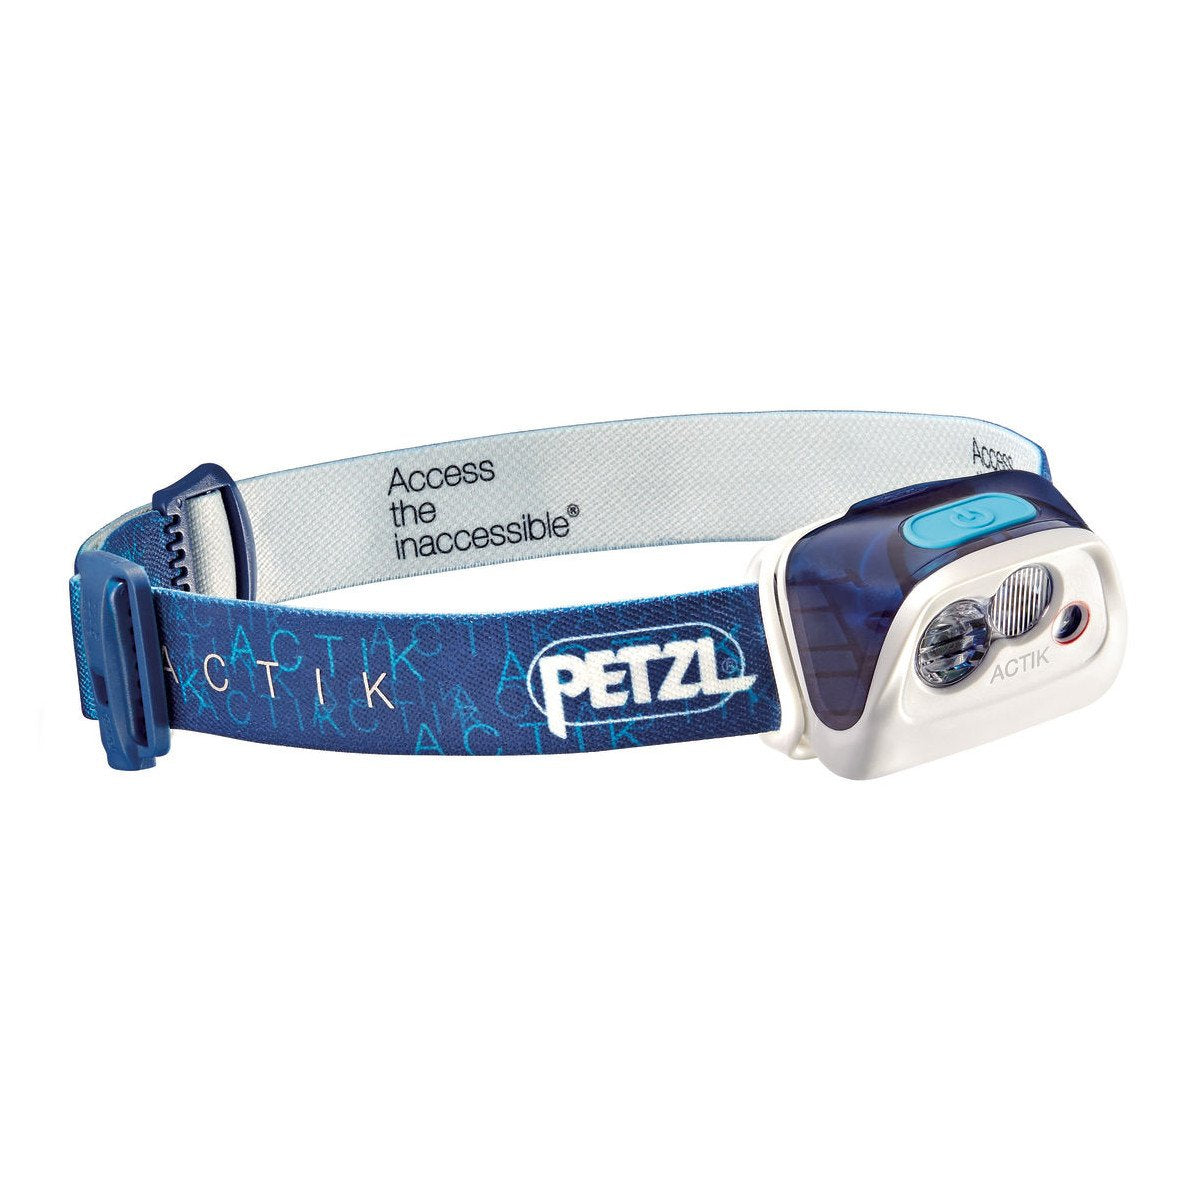 Petzl Actik (Blau) Headtorch